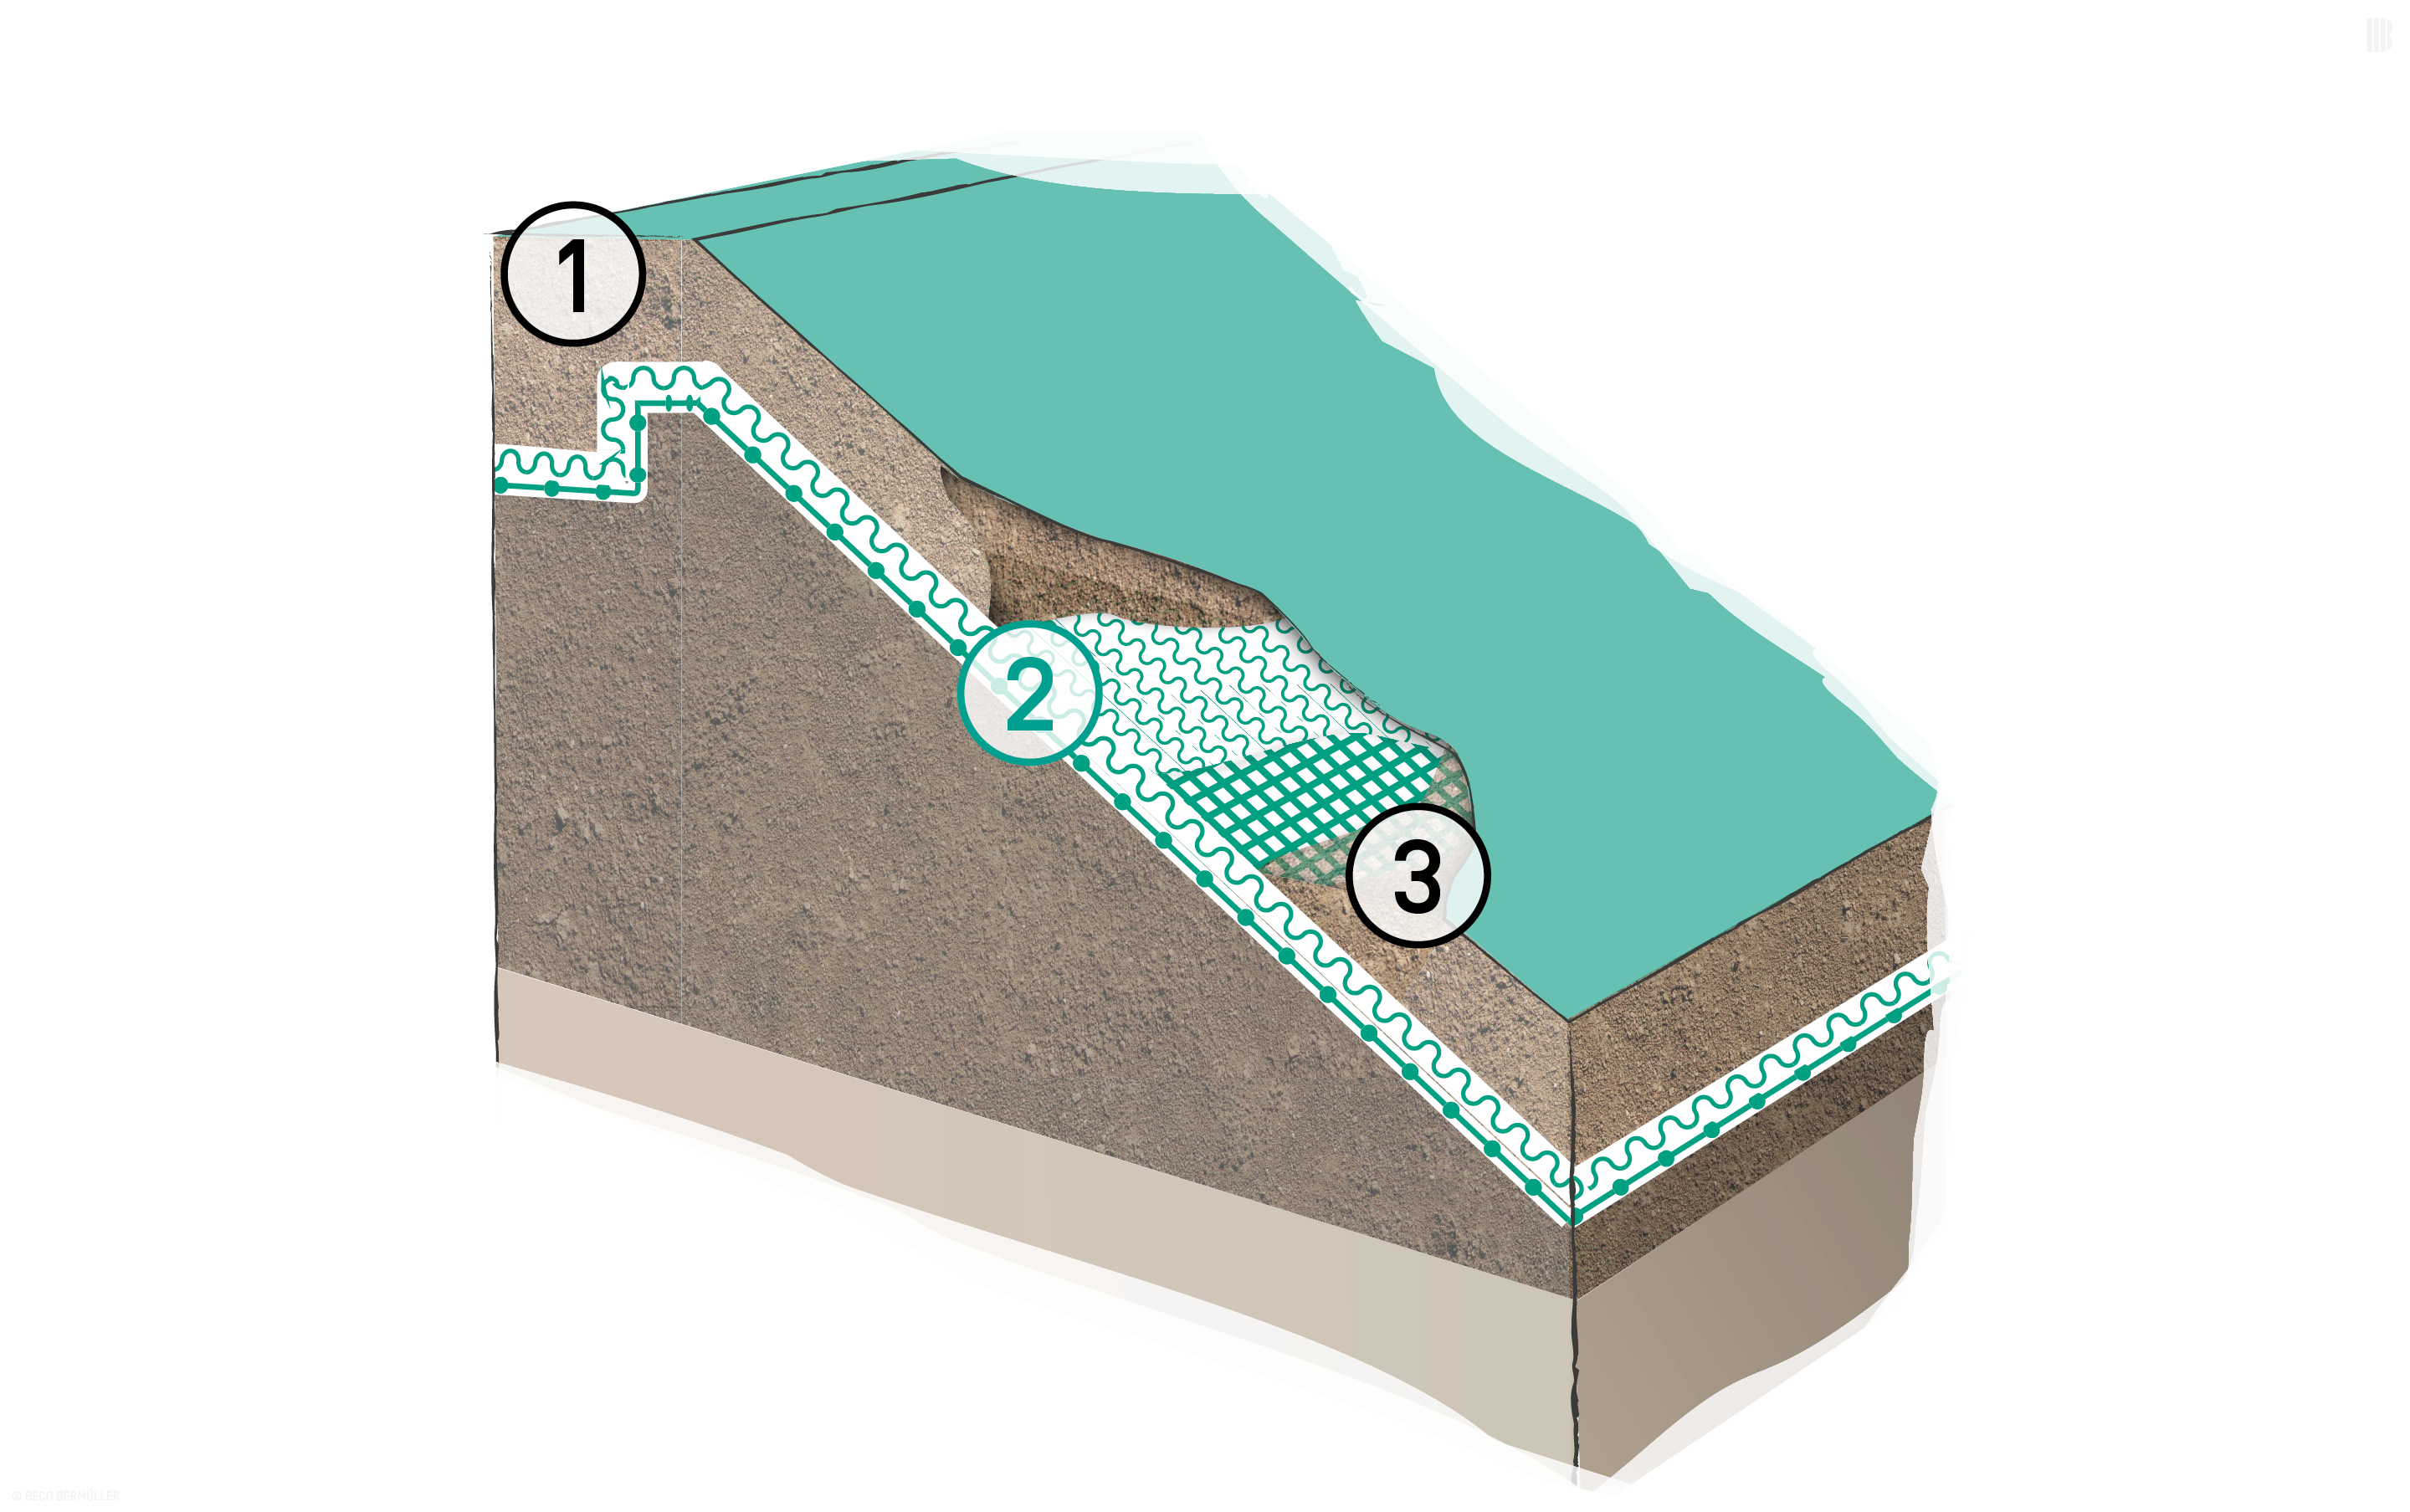 Reinforced erosion control mats laid on a slip plane parallel to the slope: 1. Embedding trench | 2. BEMAT RF Erosion Control Mat with integrated geogrid | 3. Fill material